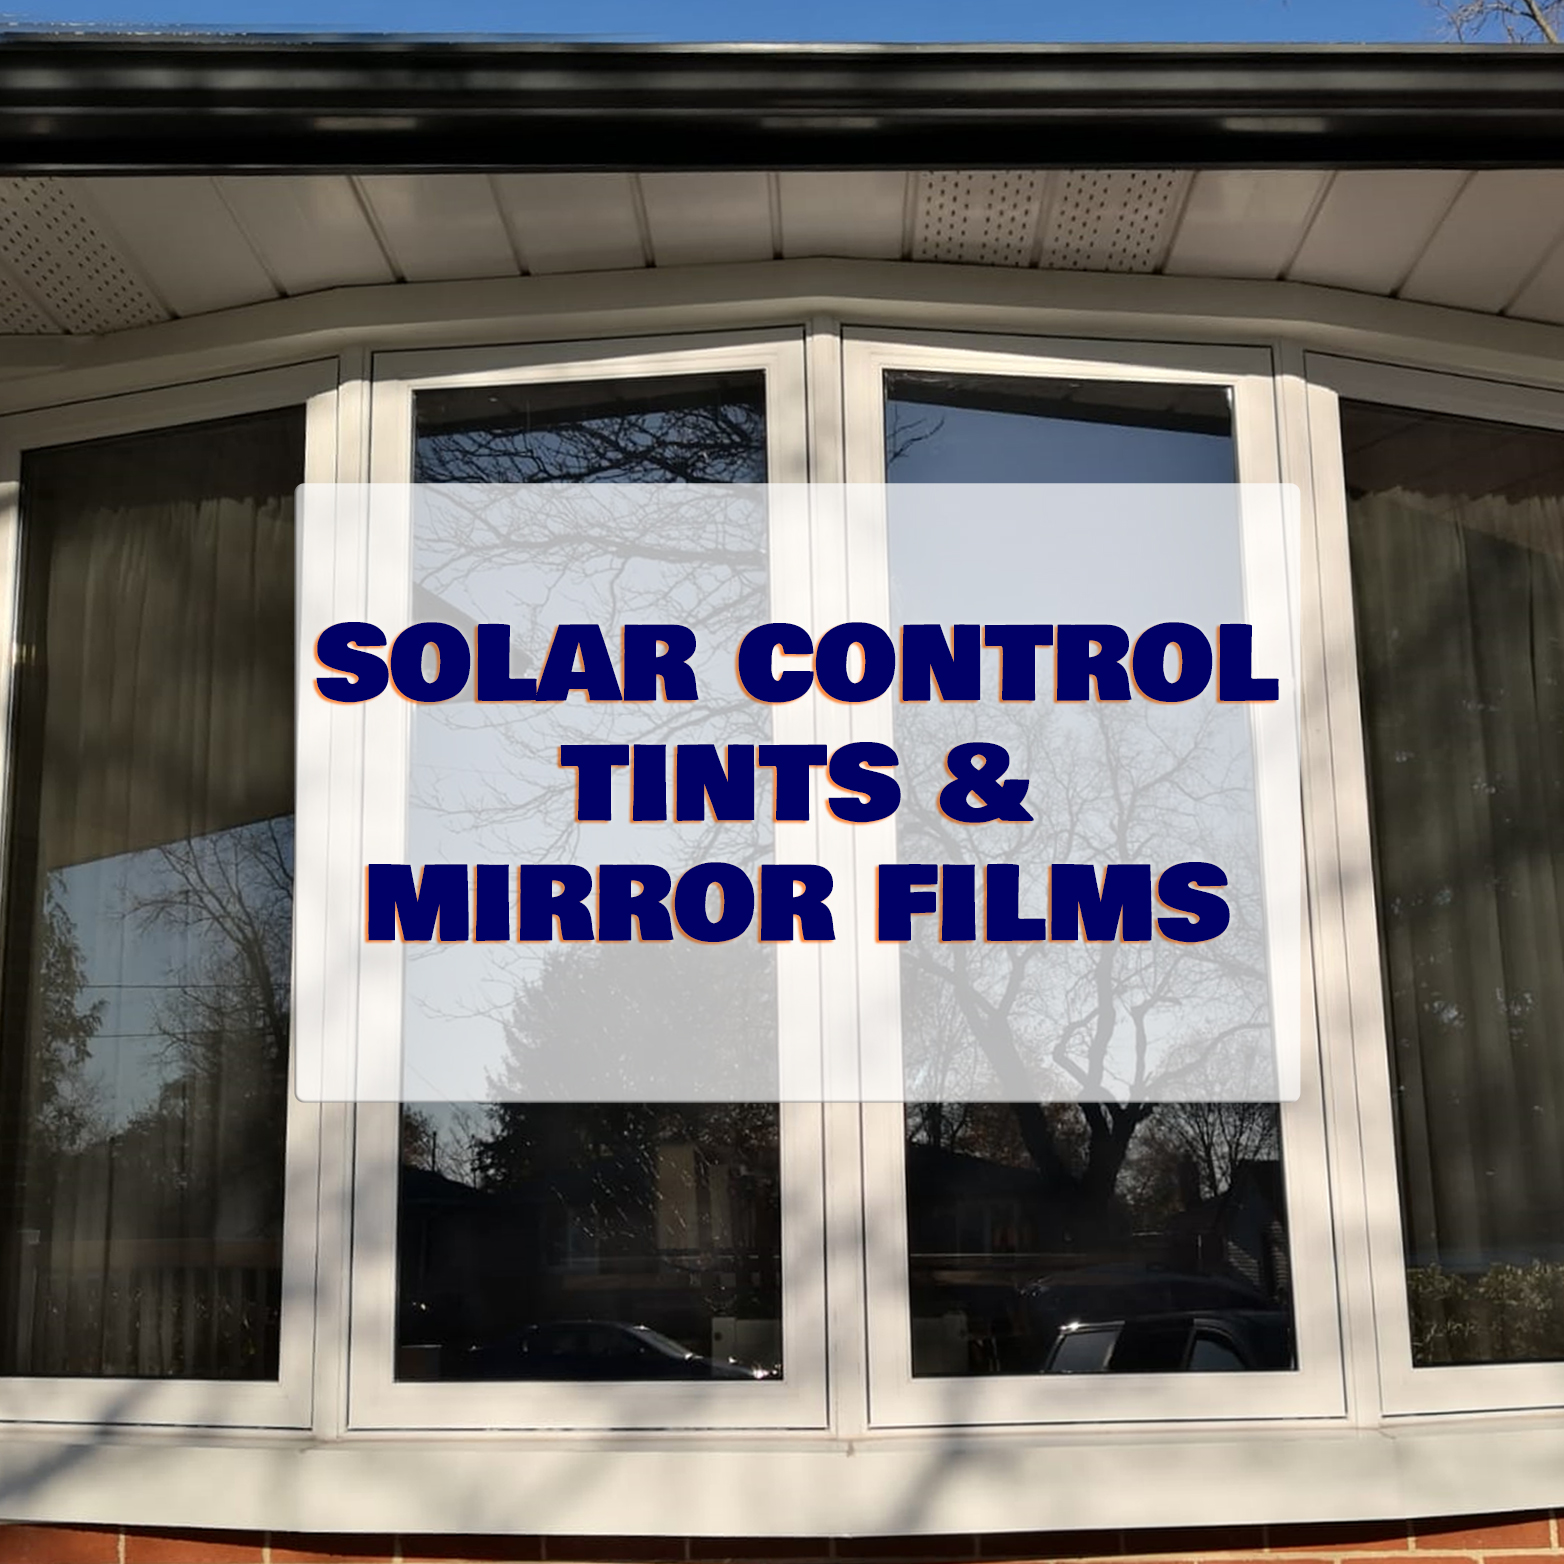 solar tint and mirror/reflective film category